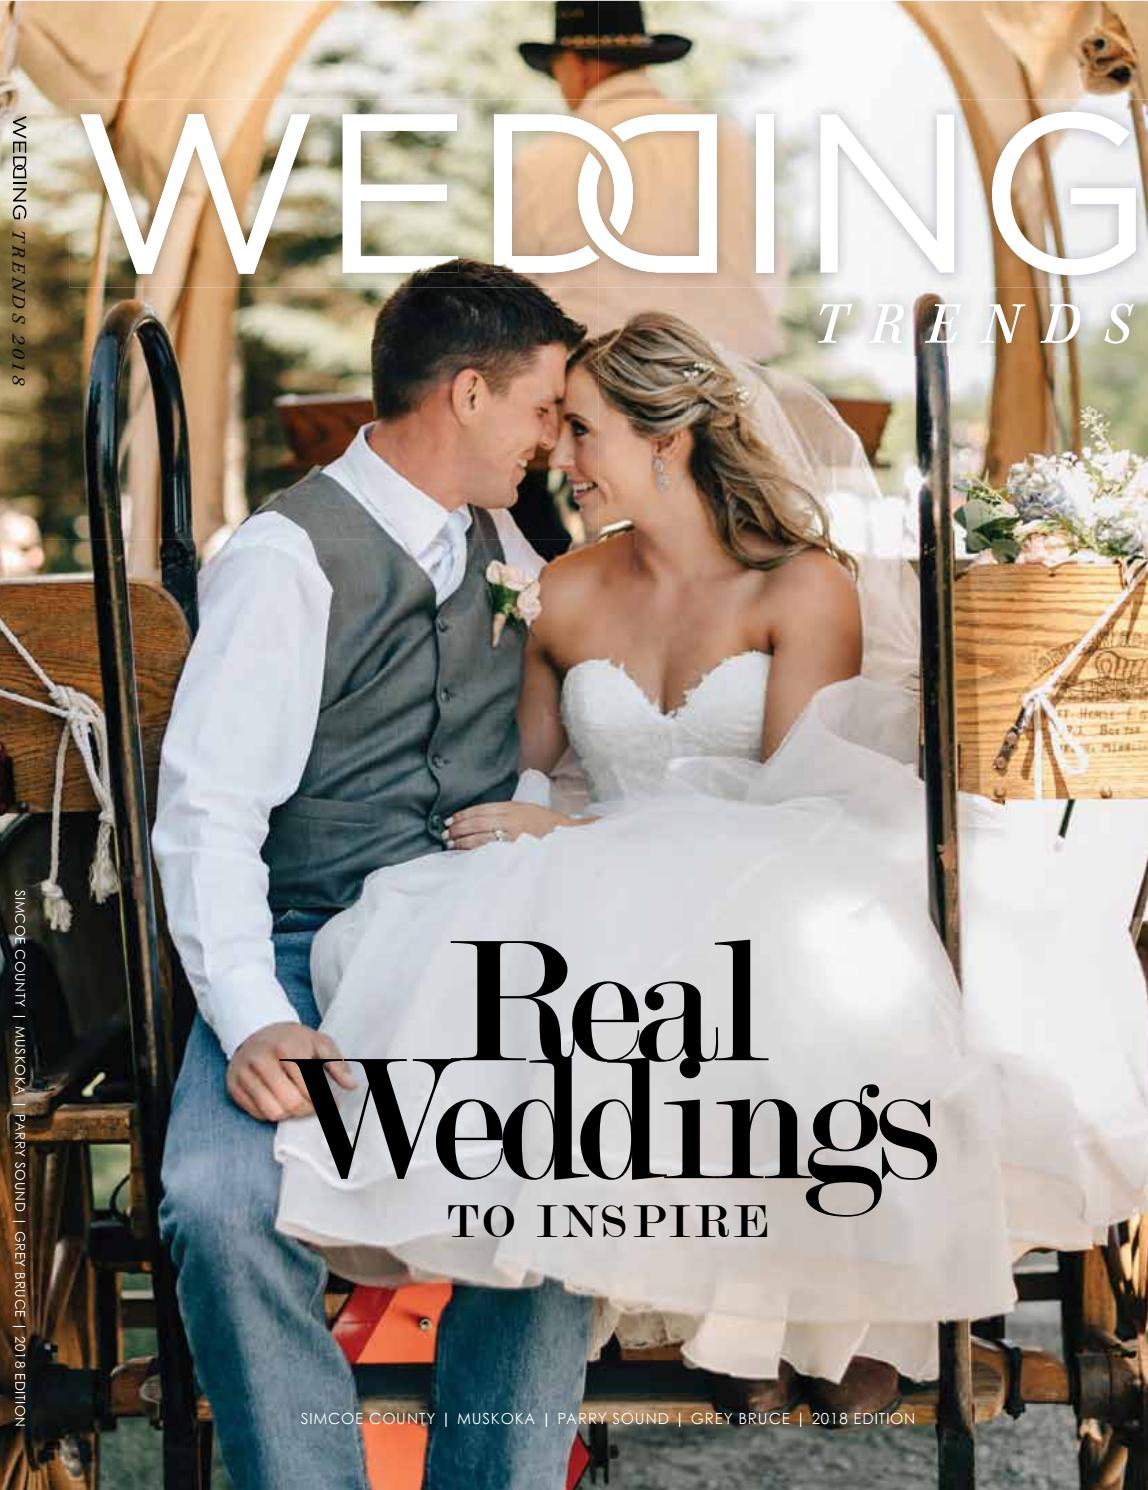 eb5a0b3854c Wedding Trends 2018 by GoodLife Magazine - Simcoe County - issuu